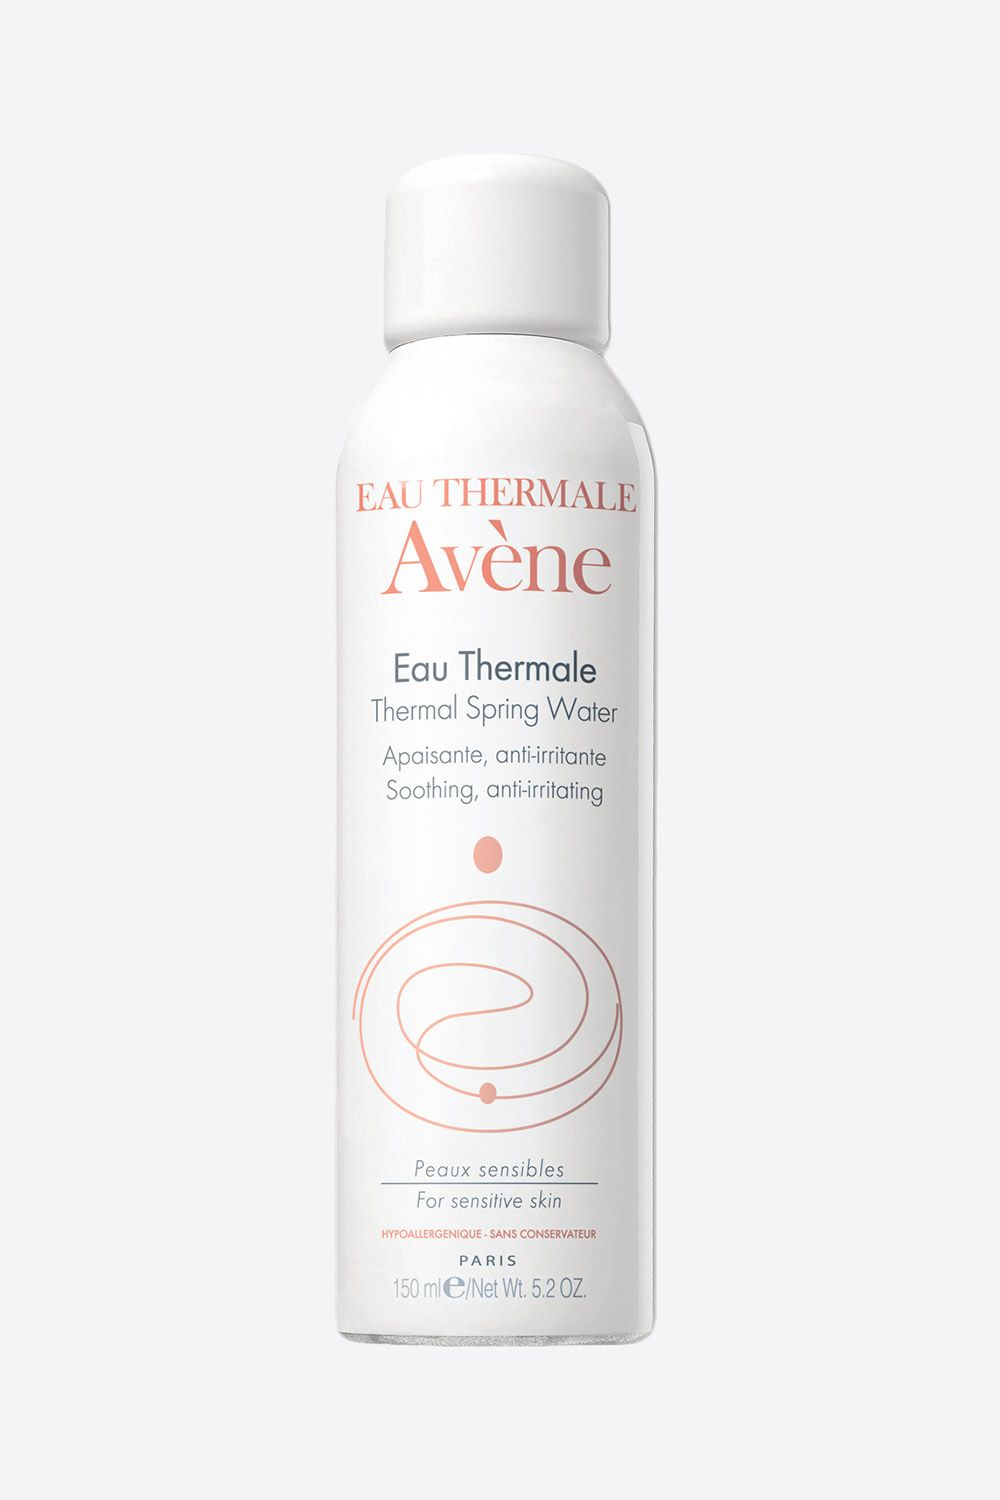 "<p>French women, especially those with sensitive skin, are obsessed with thermal water. This beloved spray is gentle enough for a baby and over 150 studies show that it effectively calms and softens skin. Talk about handbag-real-estate worthy...</p><p>Avène Eau Thermale Spring Water, $9; <a href=""http://www.drugstore.com/products/prod.asp?pid=193767&catid=182950&aid=338666&aparam=193767&kpid=193767&CAWELAID=120142990000013550&CAGPSPN=pla&CAAGID=15436301413&CATCI=pla-112542614653"" target=""_blank"">drugstore.com</a>.</p>"